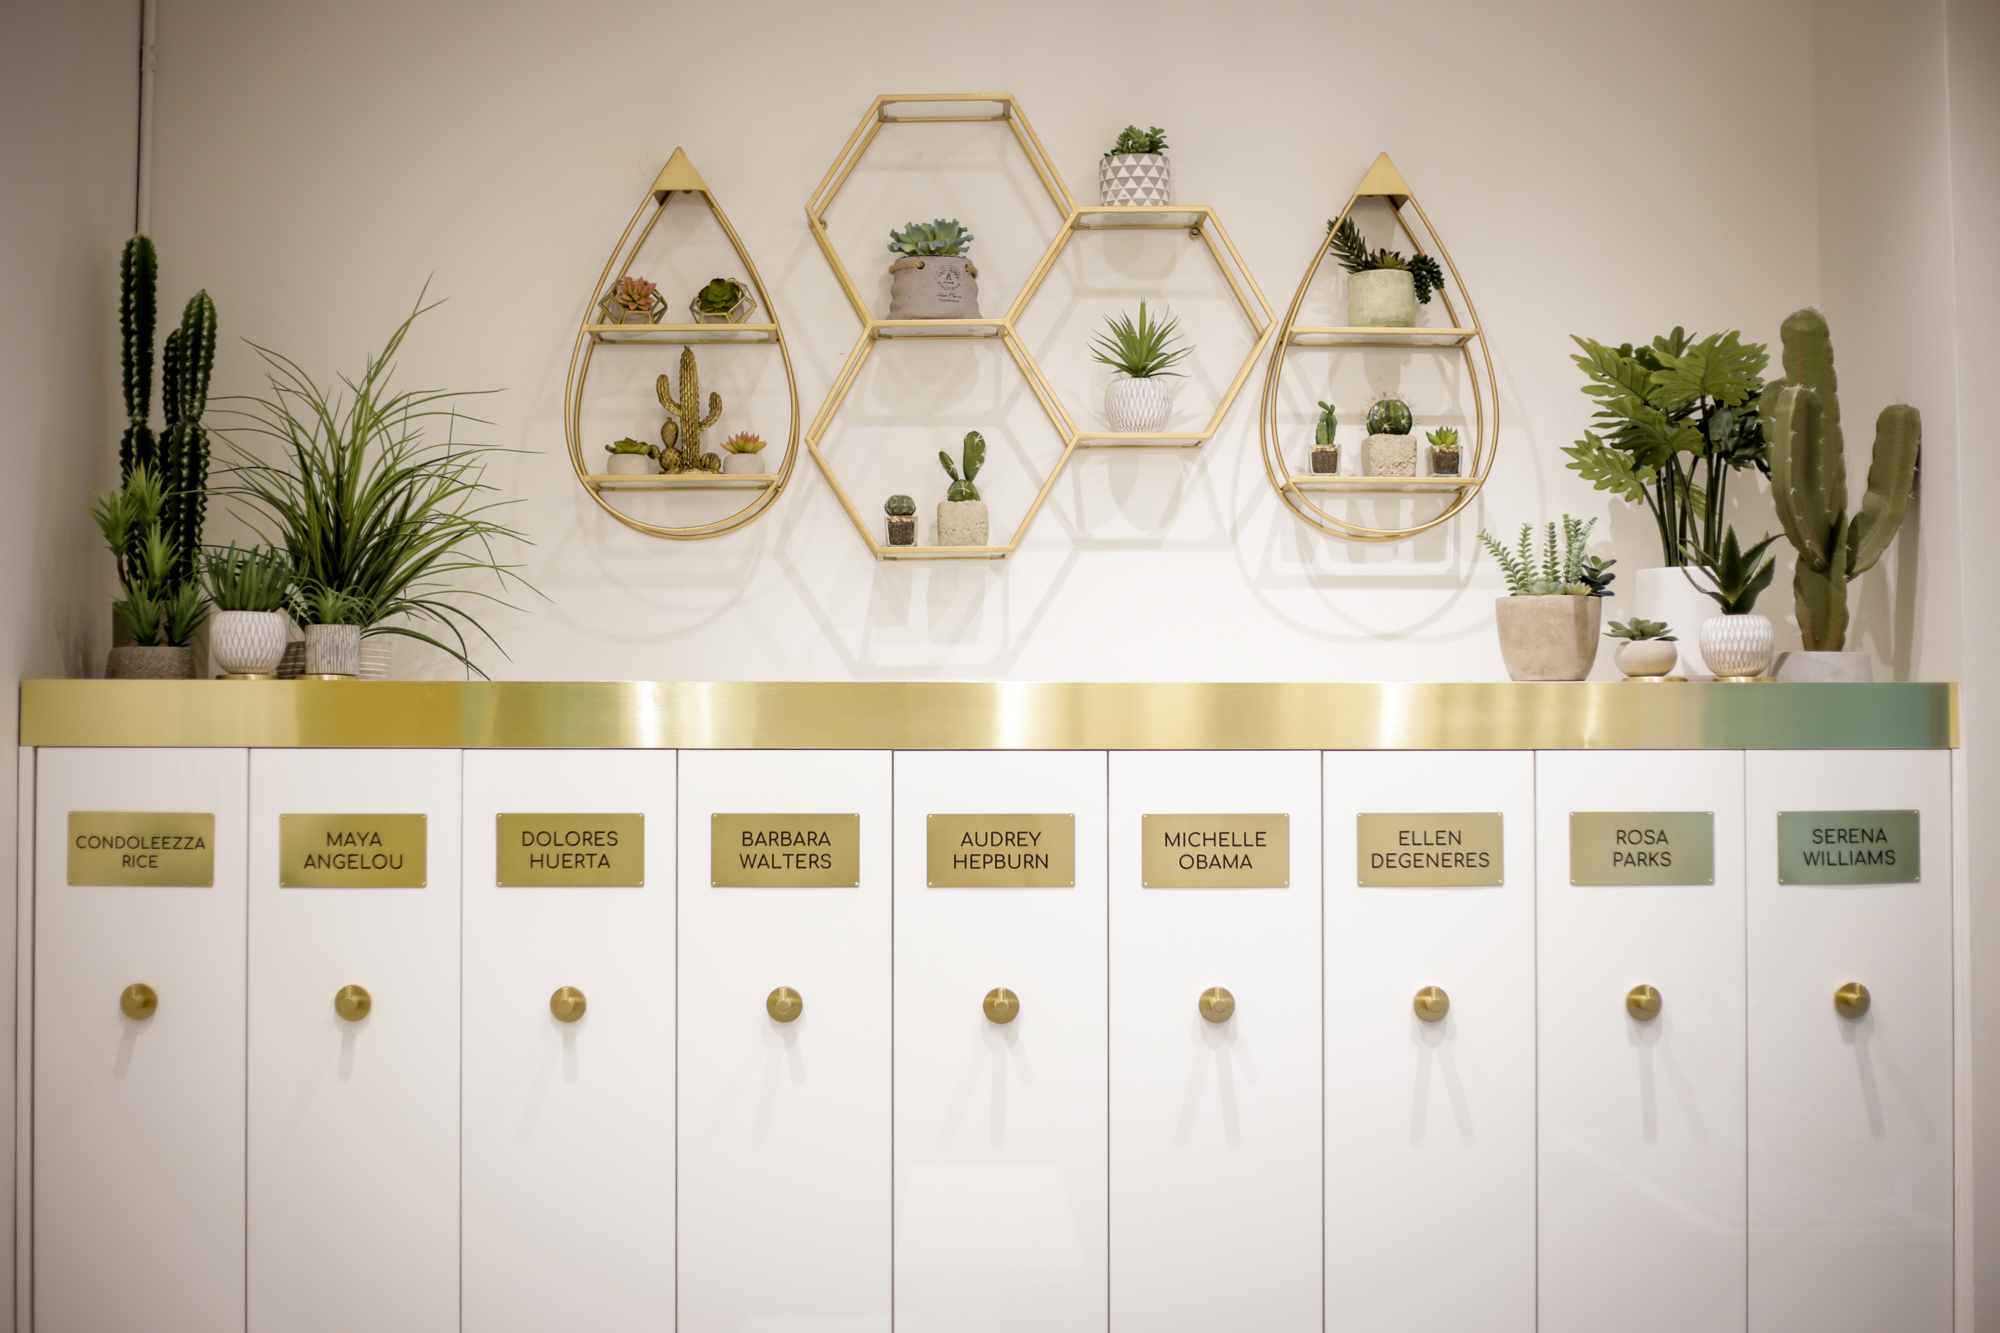 Our iconic loop lockers named after inspiring women